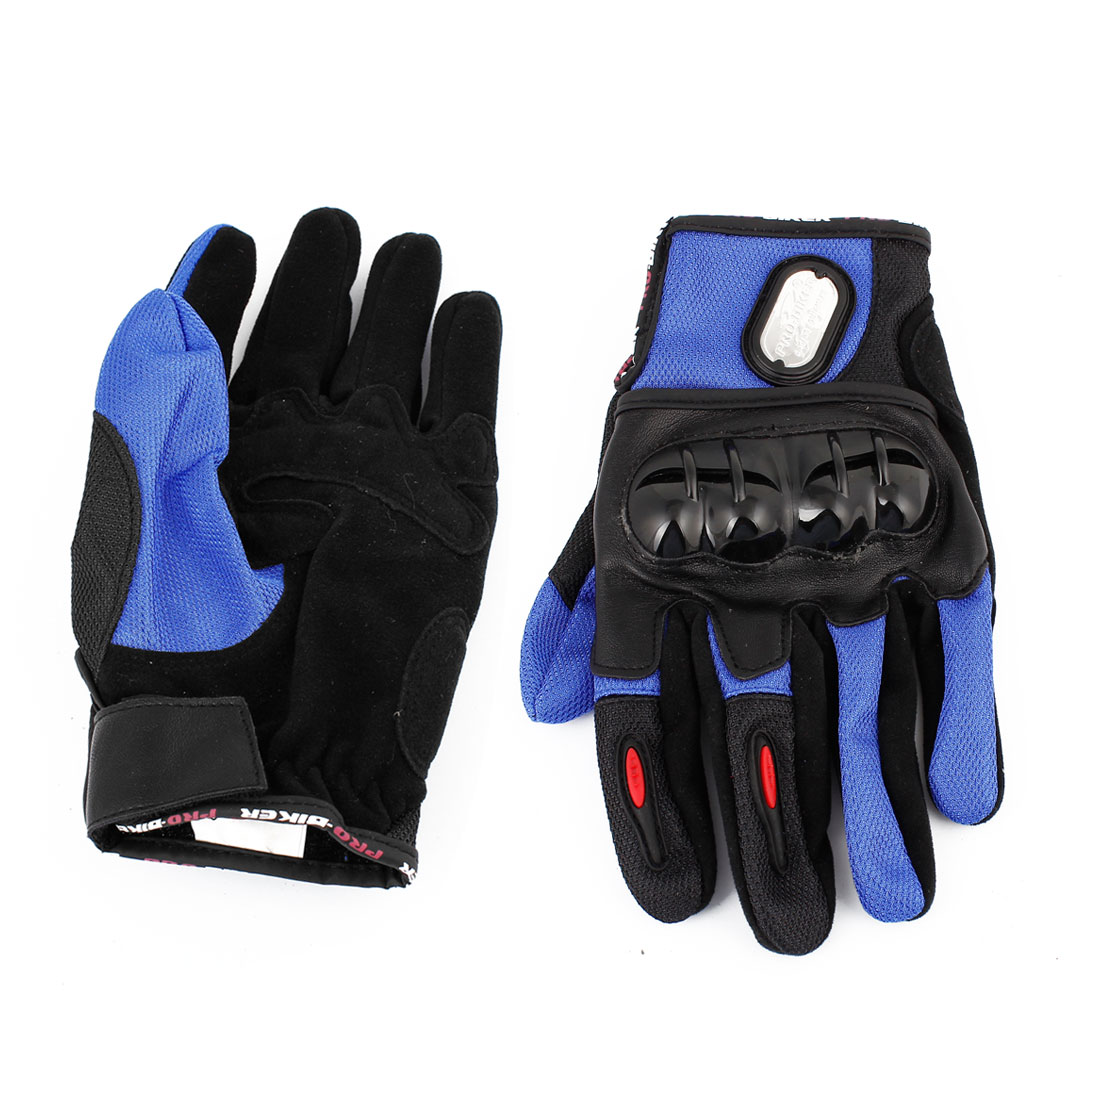 2 Pcs Women Men Bike Sport Cycling Motorcycle Full Finger Gloves Black Blue XL